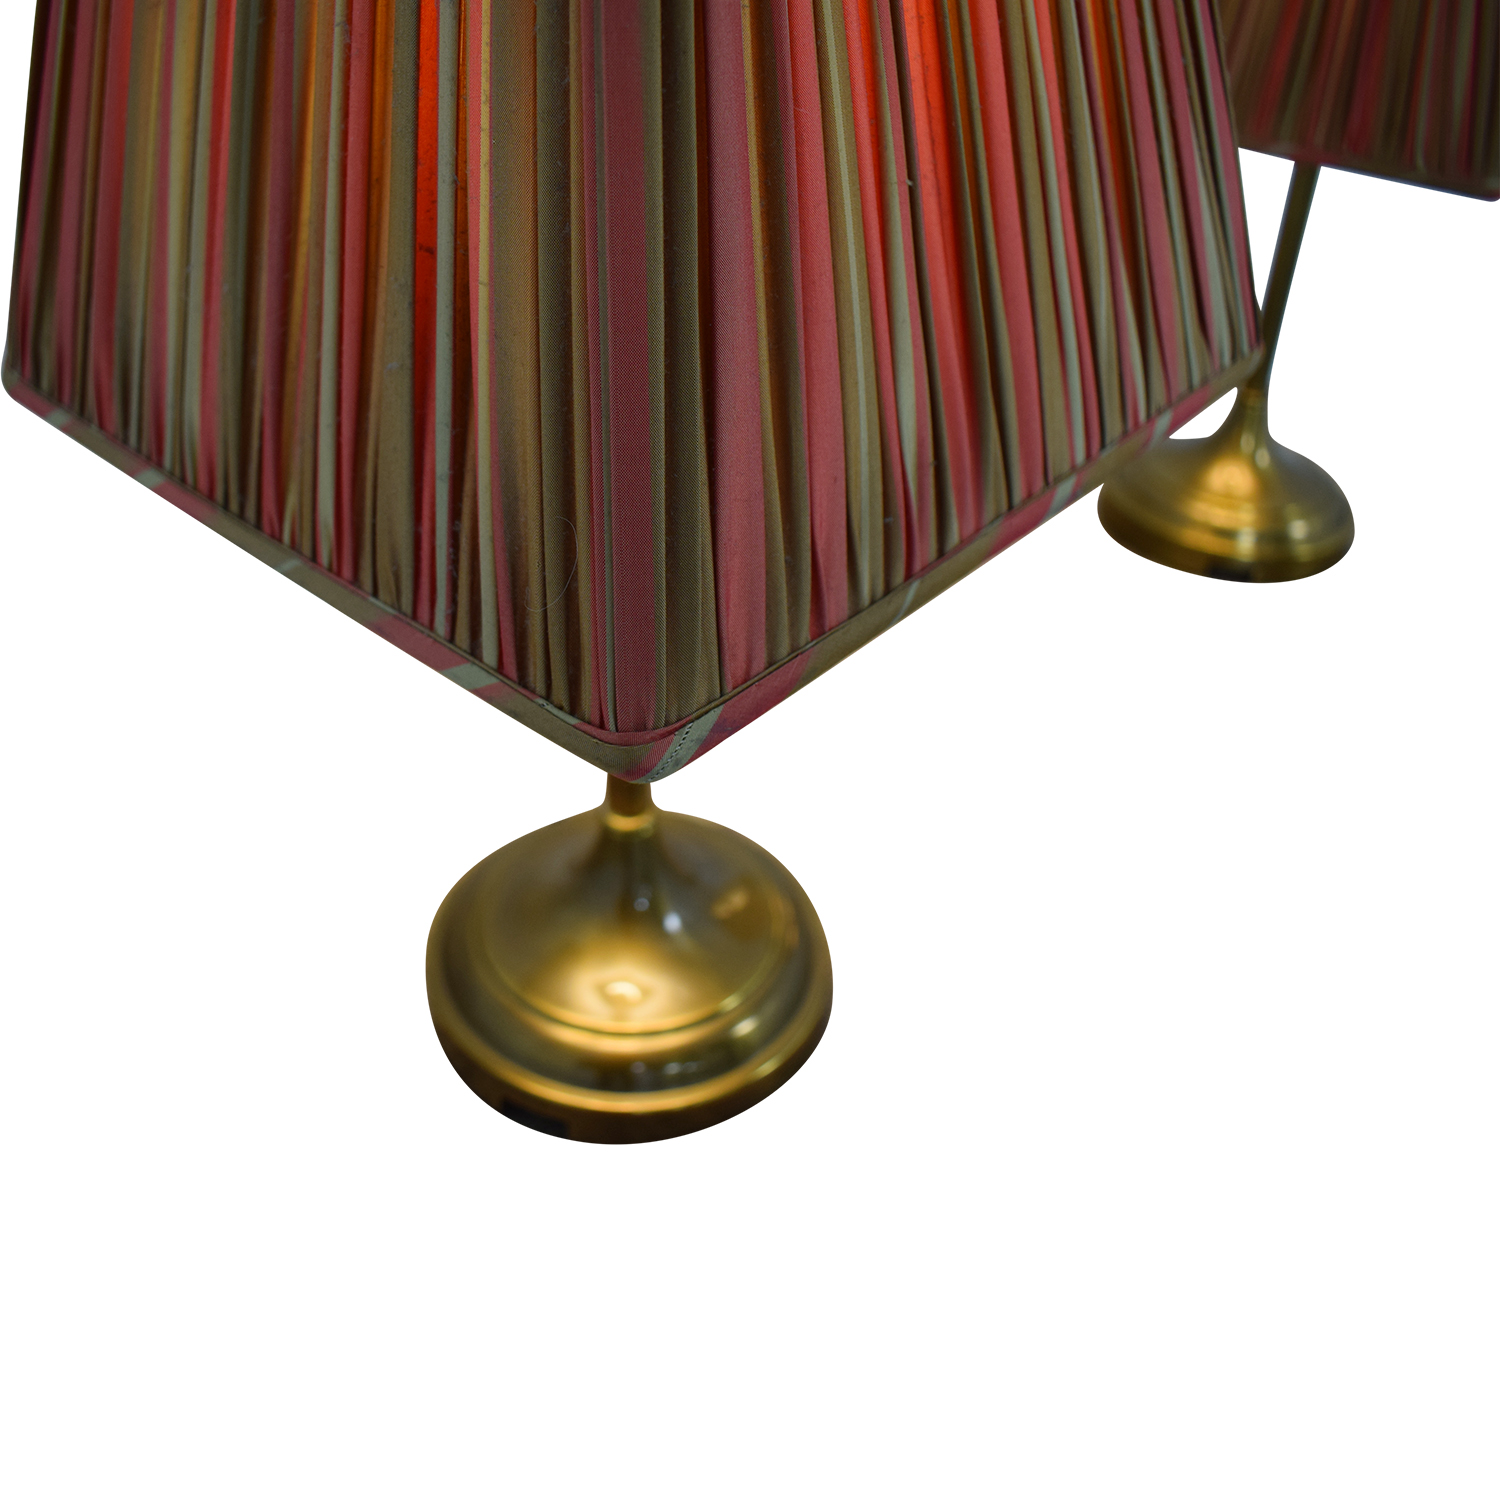 Pottery Barn Striped Shade Brass Lamps / Lamps